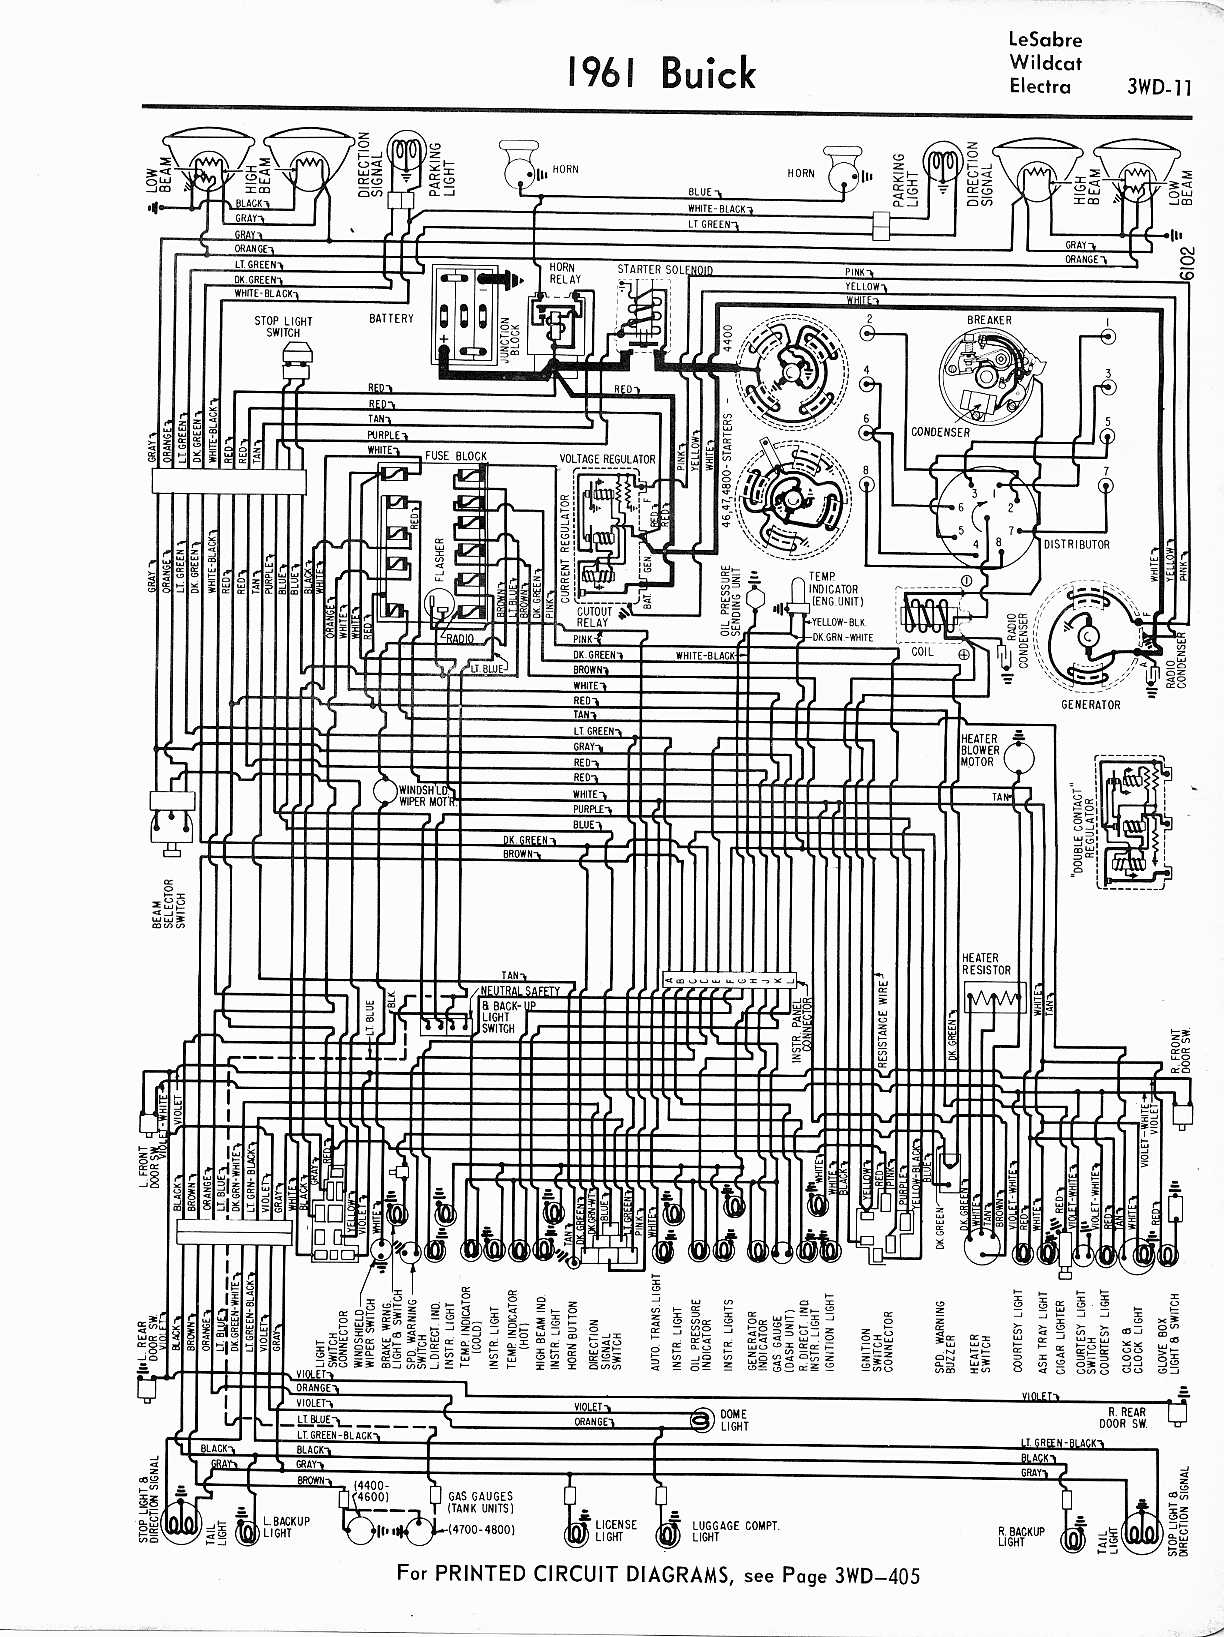 fuse diagram 1997 buick riviera wiring diagram  riviera fuse box diagram #13